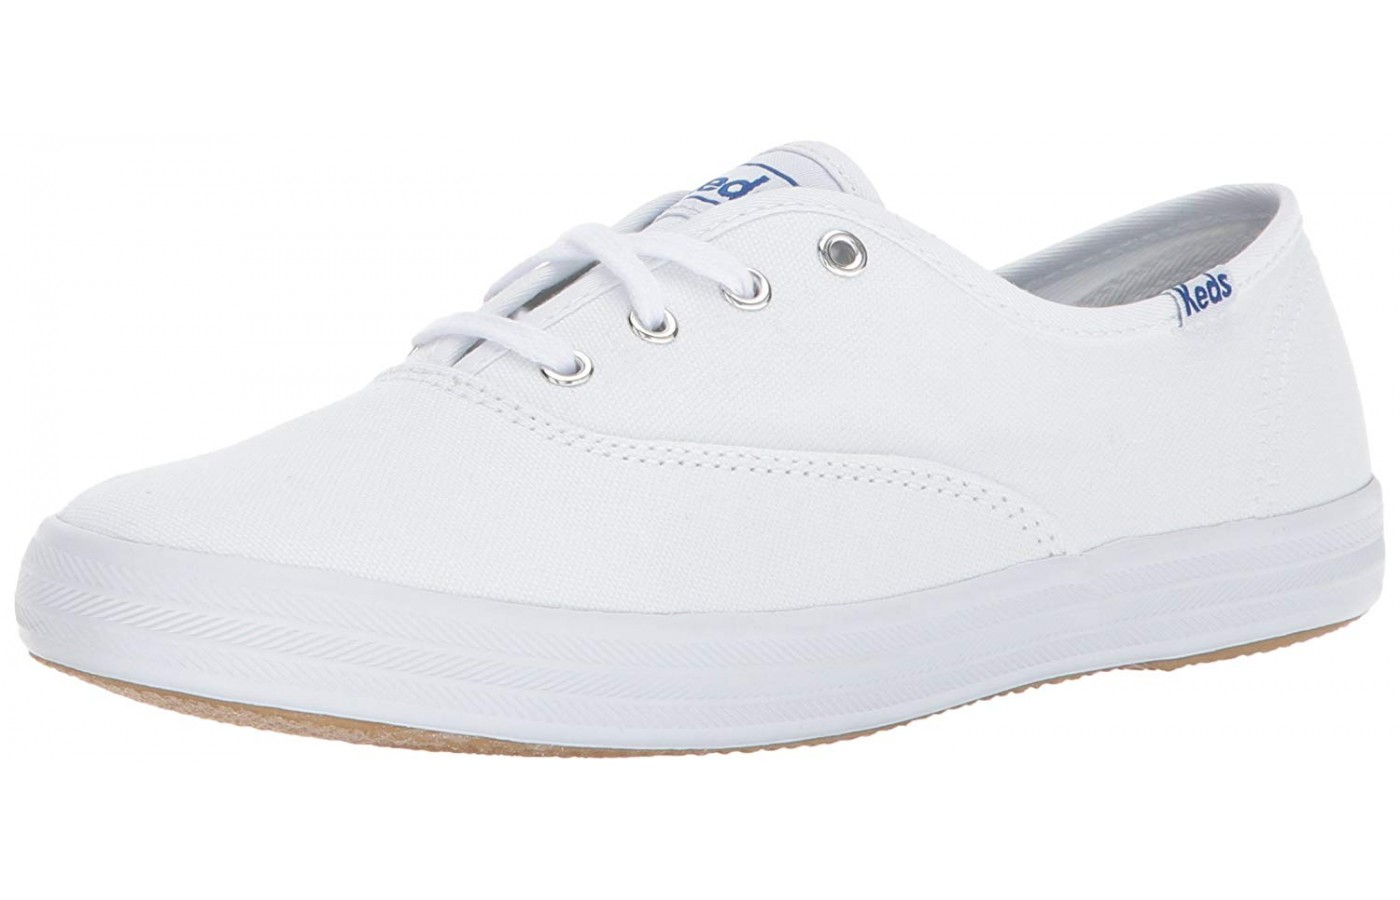 76d58210a5a50 Keds Champion Reviewed for Performance in 2019